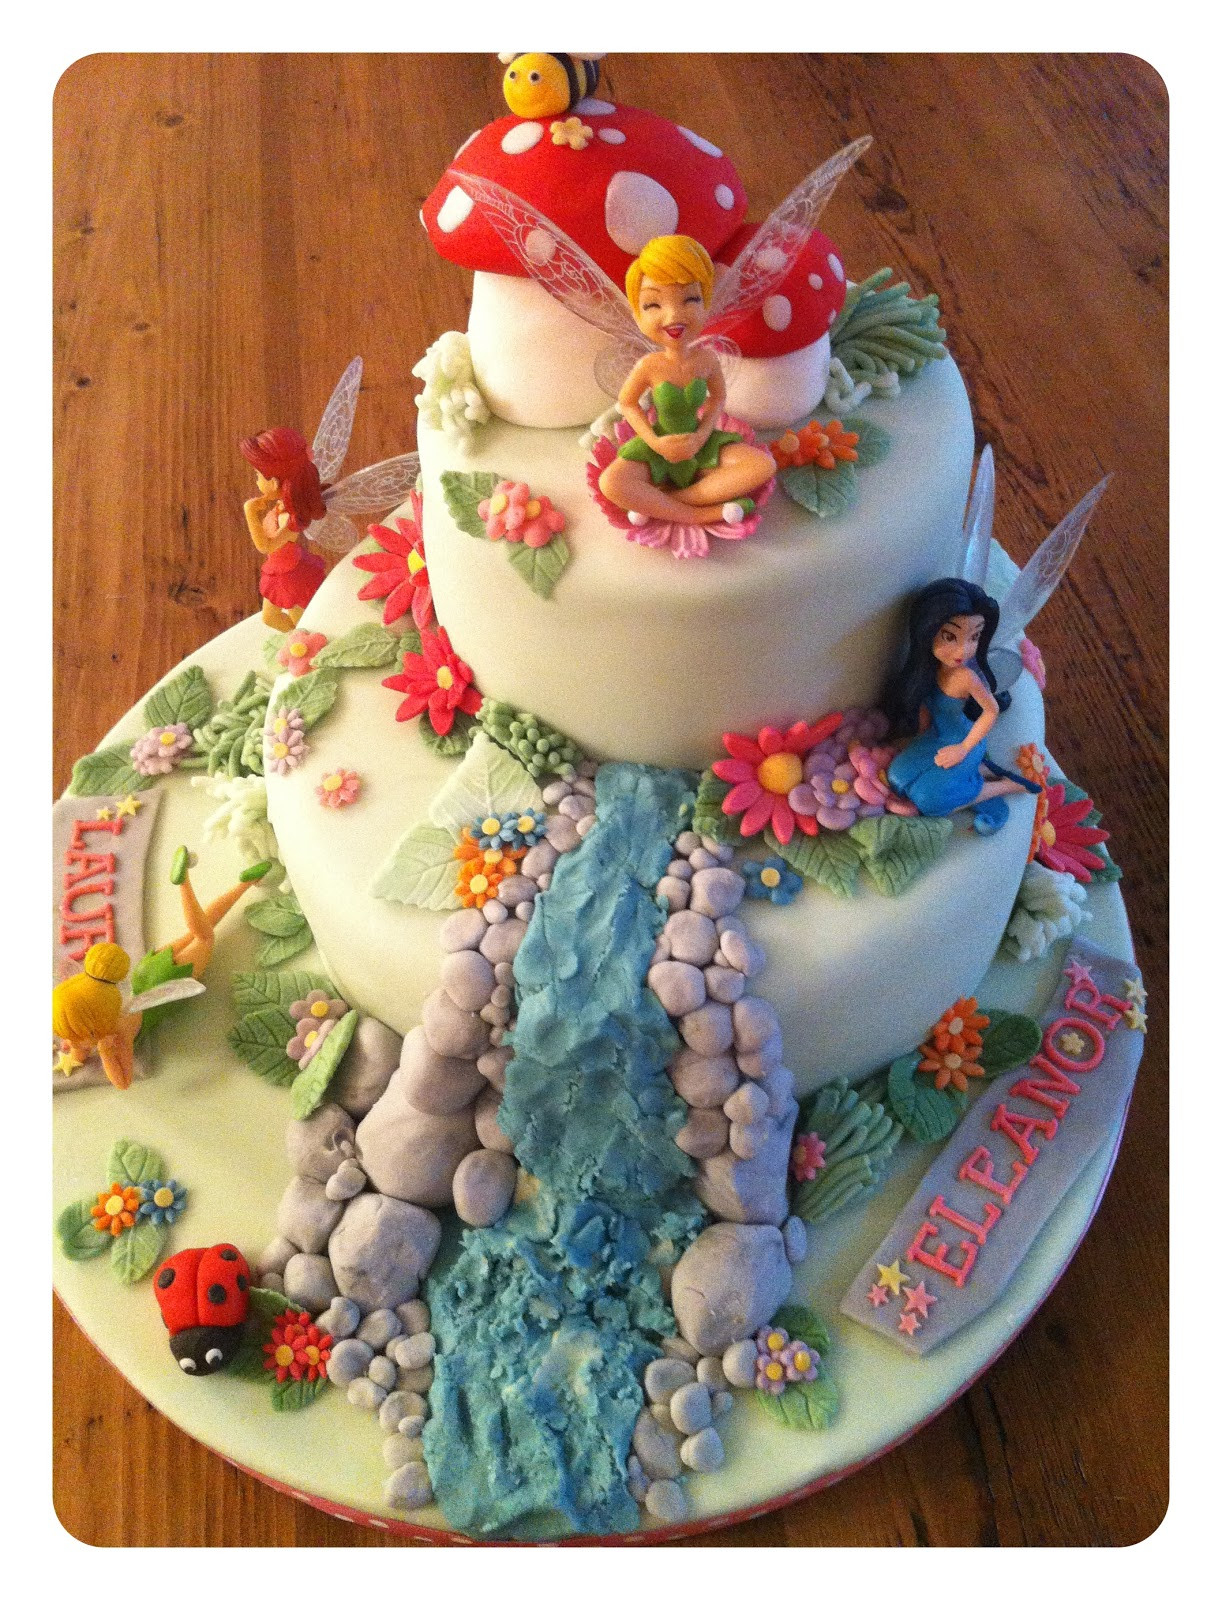 Best ideas about Tinkerbell Birthday Cake . Save or Pin homebird Tinkerbell birthday cake Now.